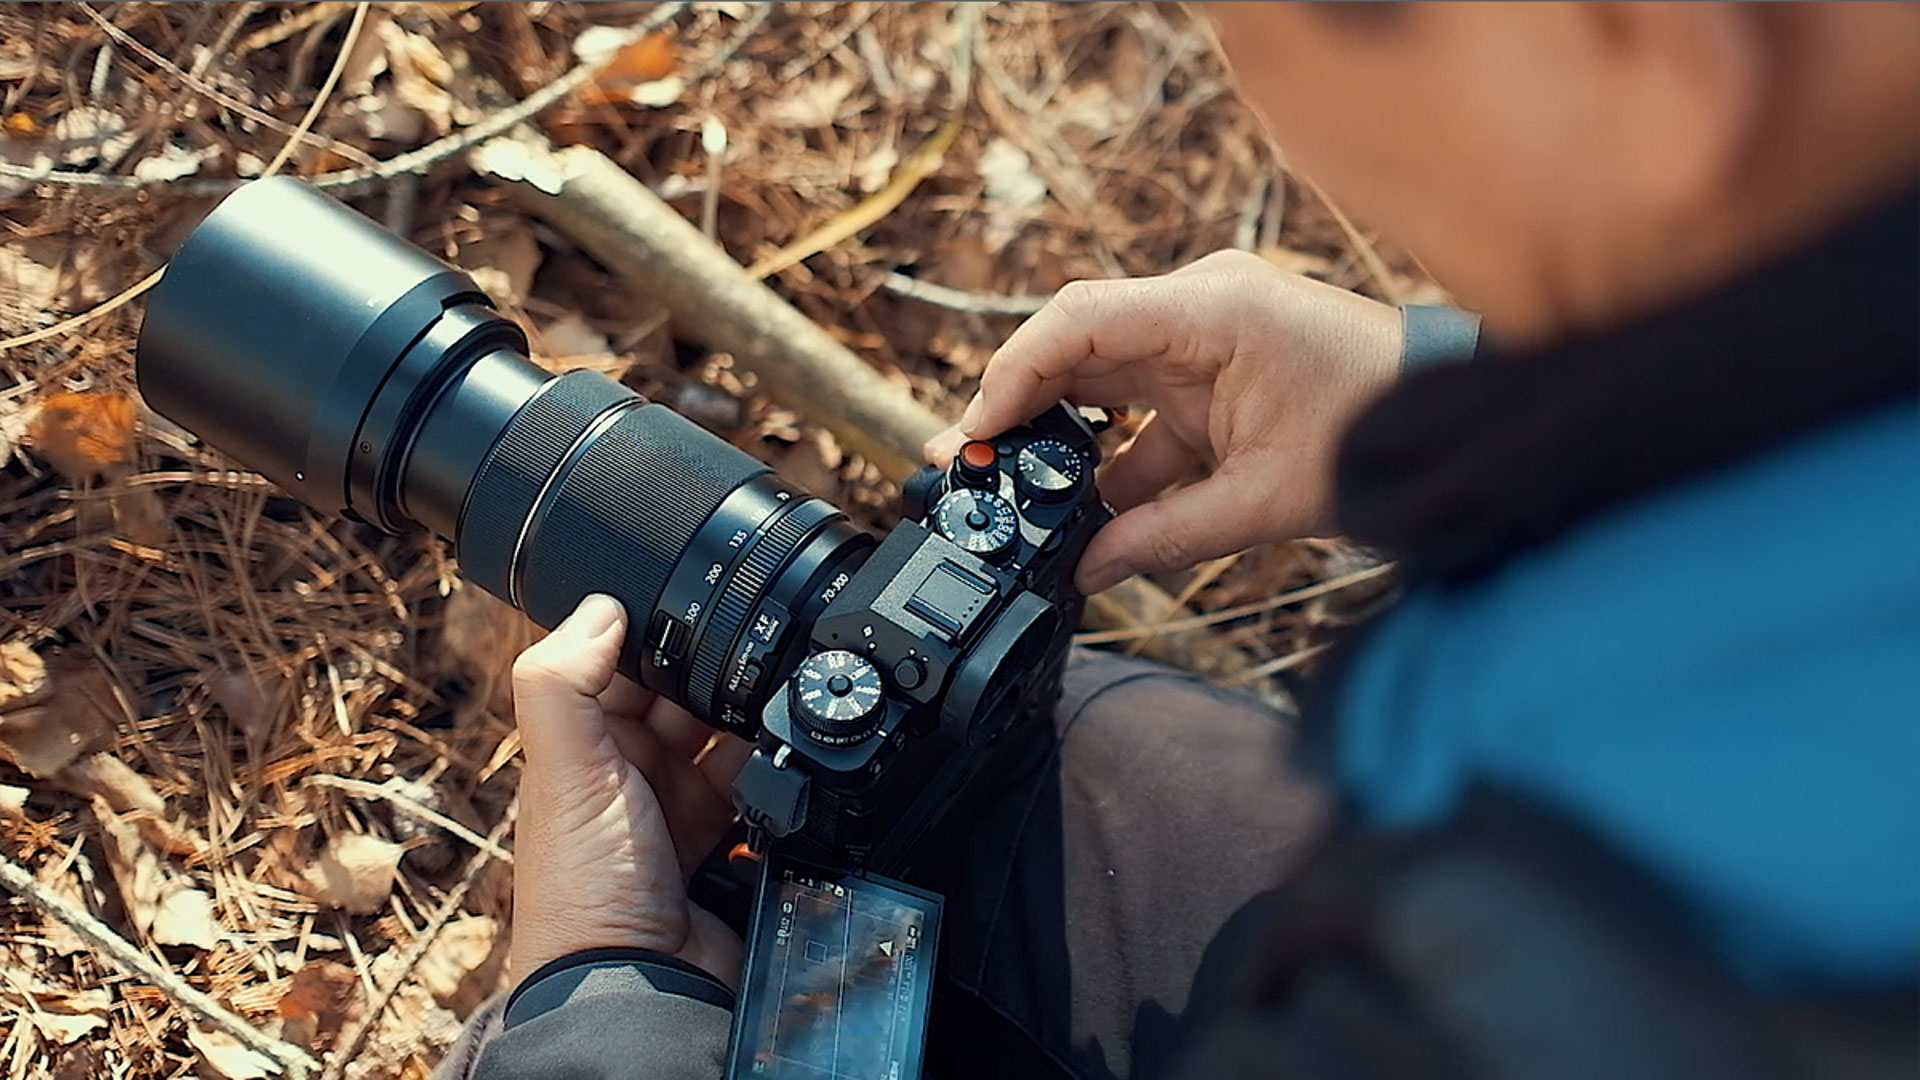 XF70-300mm in action